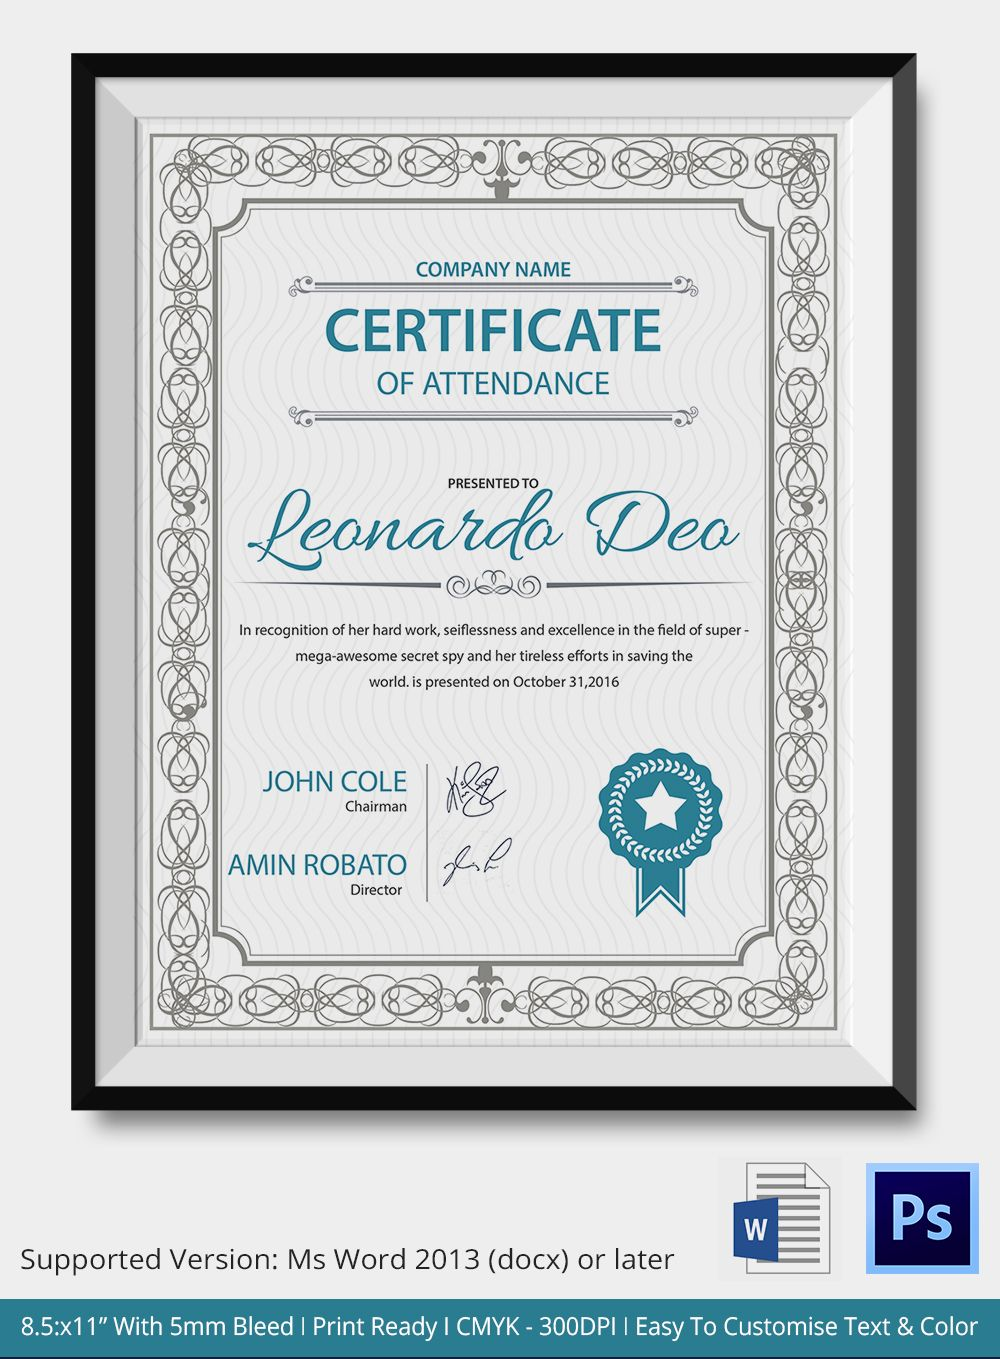 Professional editable certificate of attendance template sample professional editable certificate of attendance template sample for company with blue and gray color scheme yadclub Images